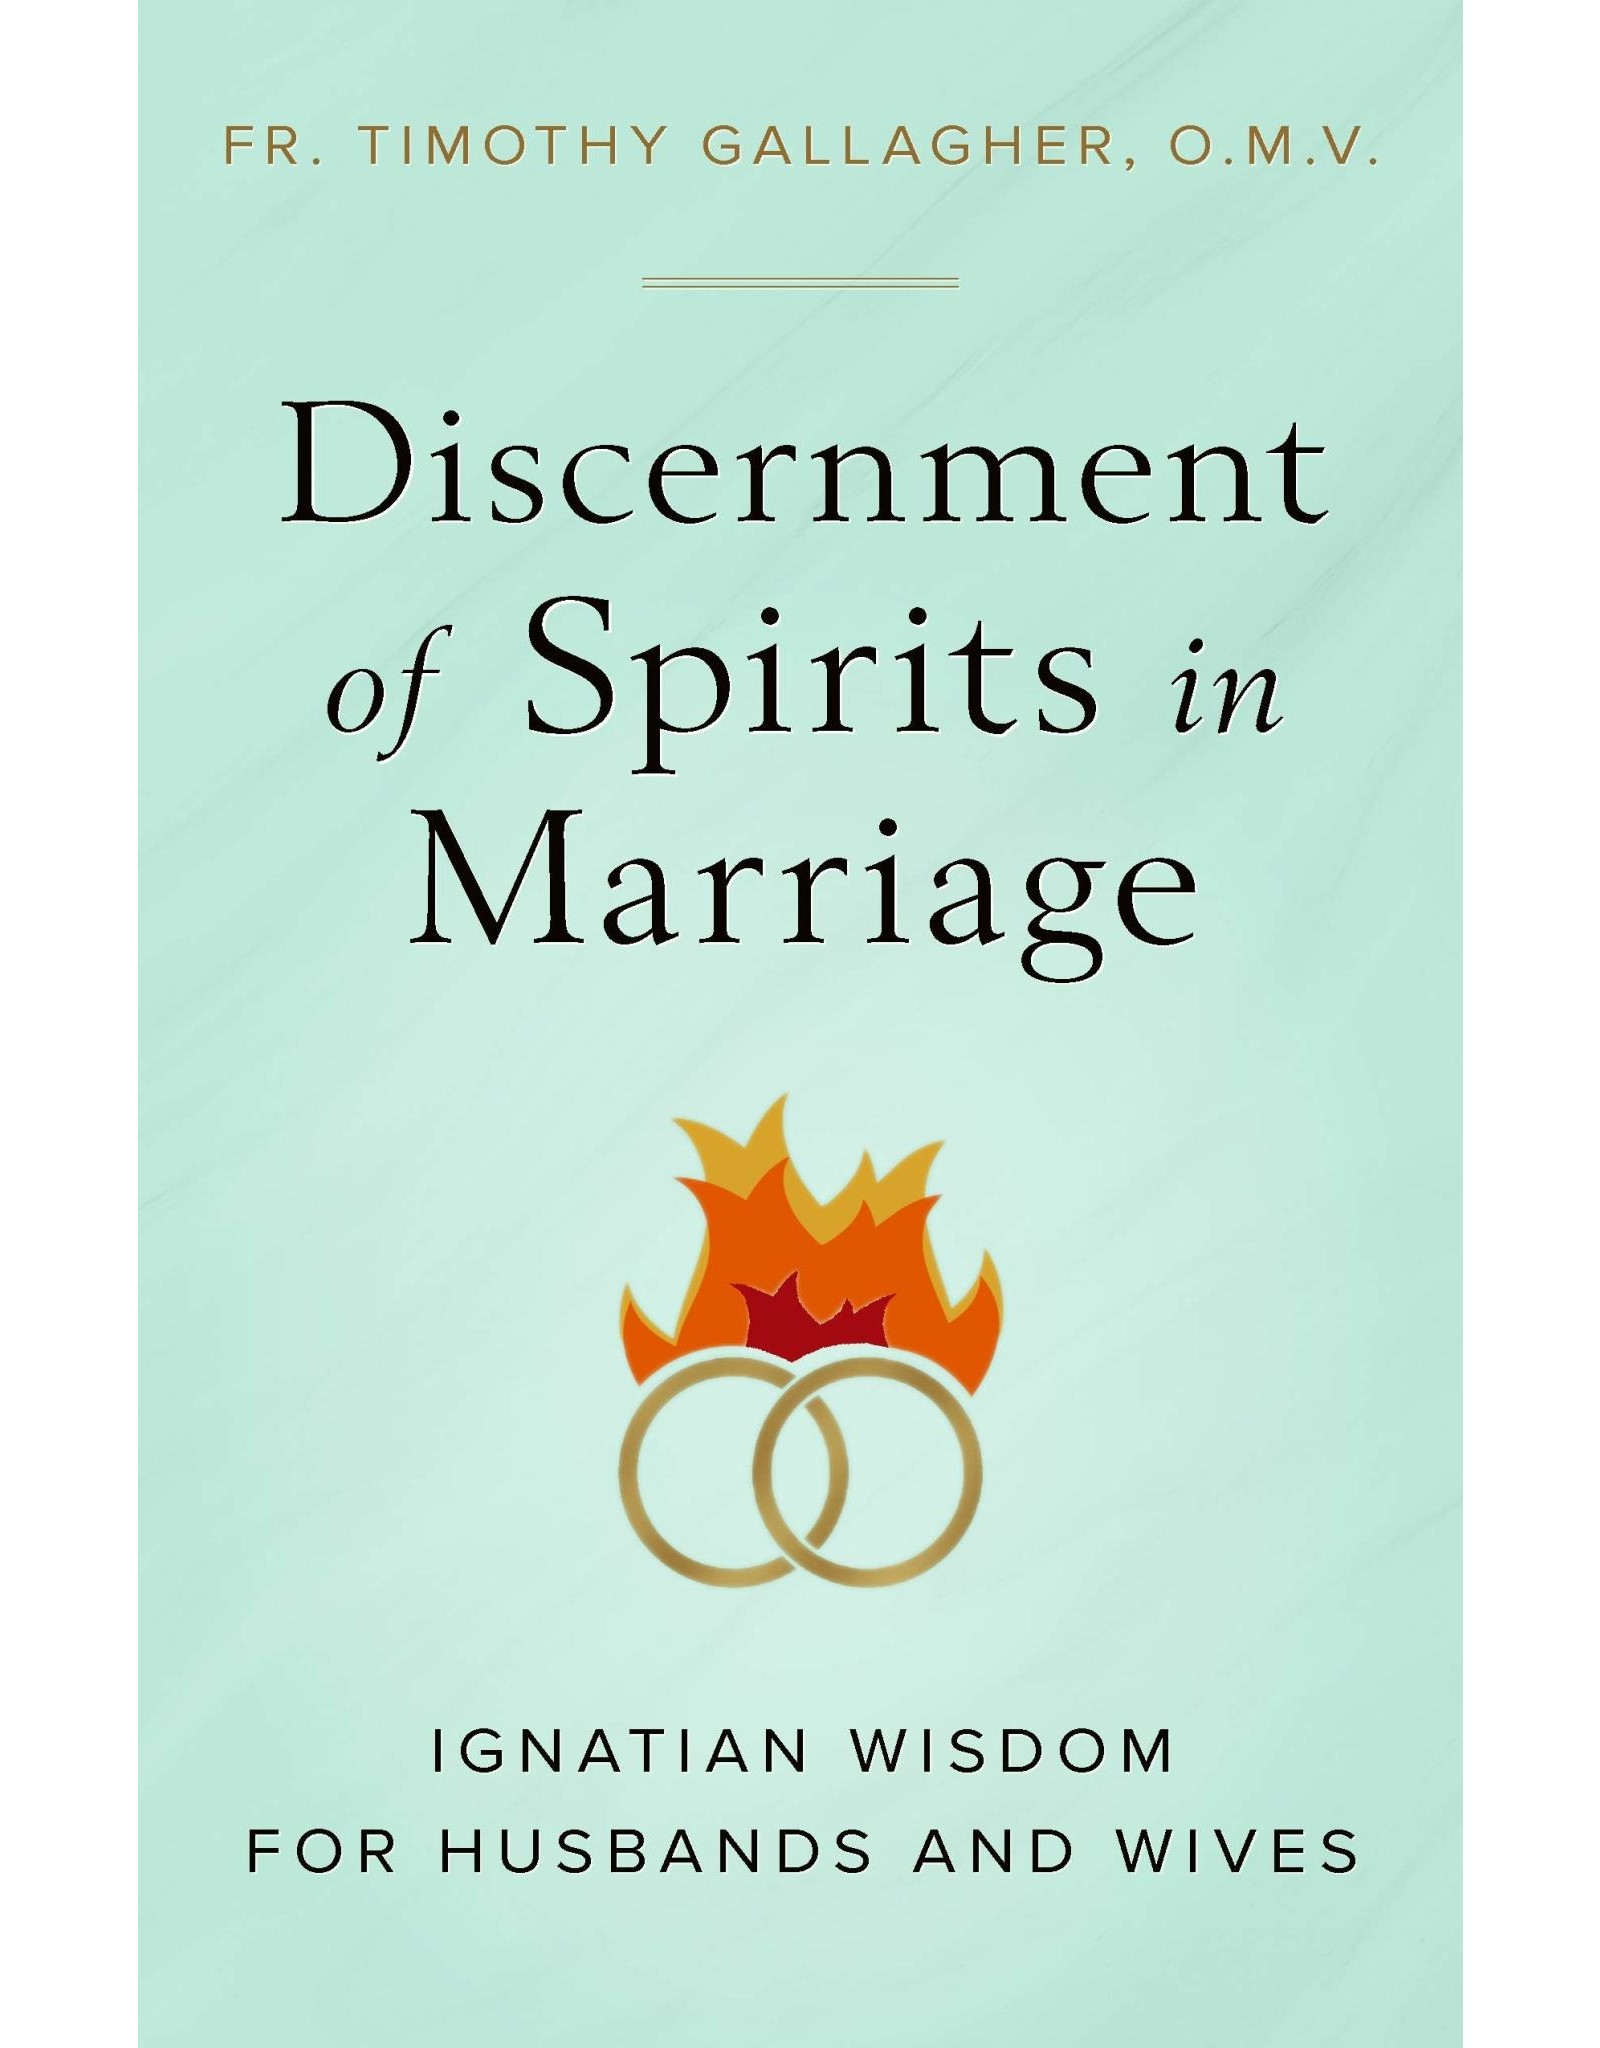 Discernment of Spirits in Marriage: Ignatian Wisdom for Husbands & Wives